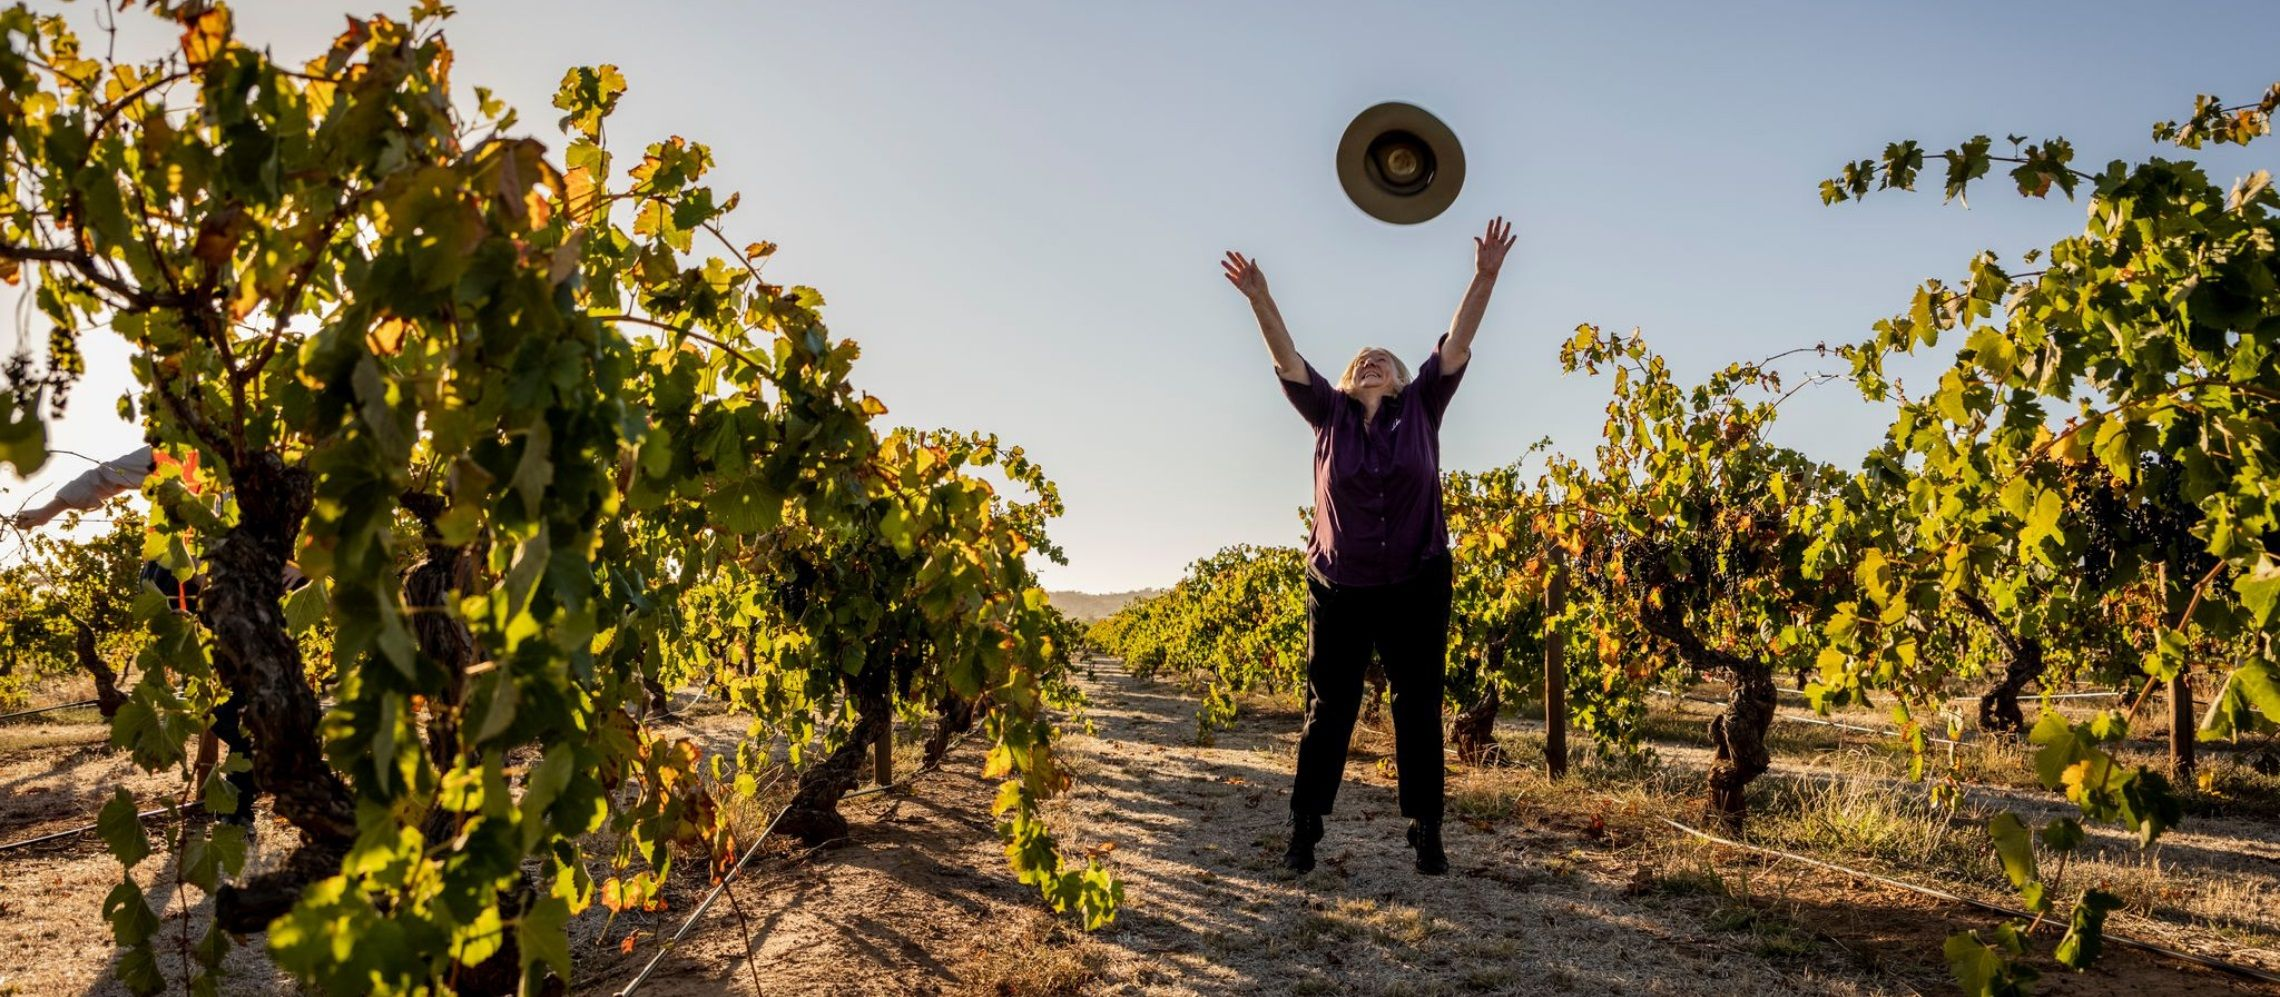 Photo for: Australia Takes the Top Spot at the 2021 London Wine Competition